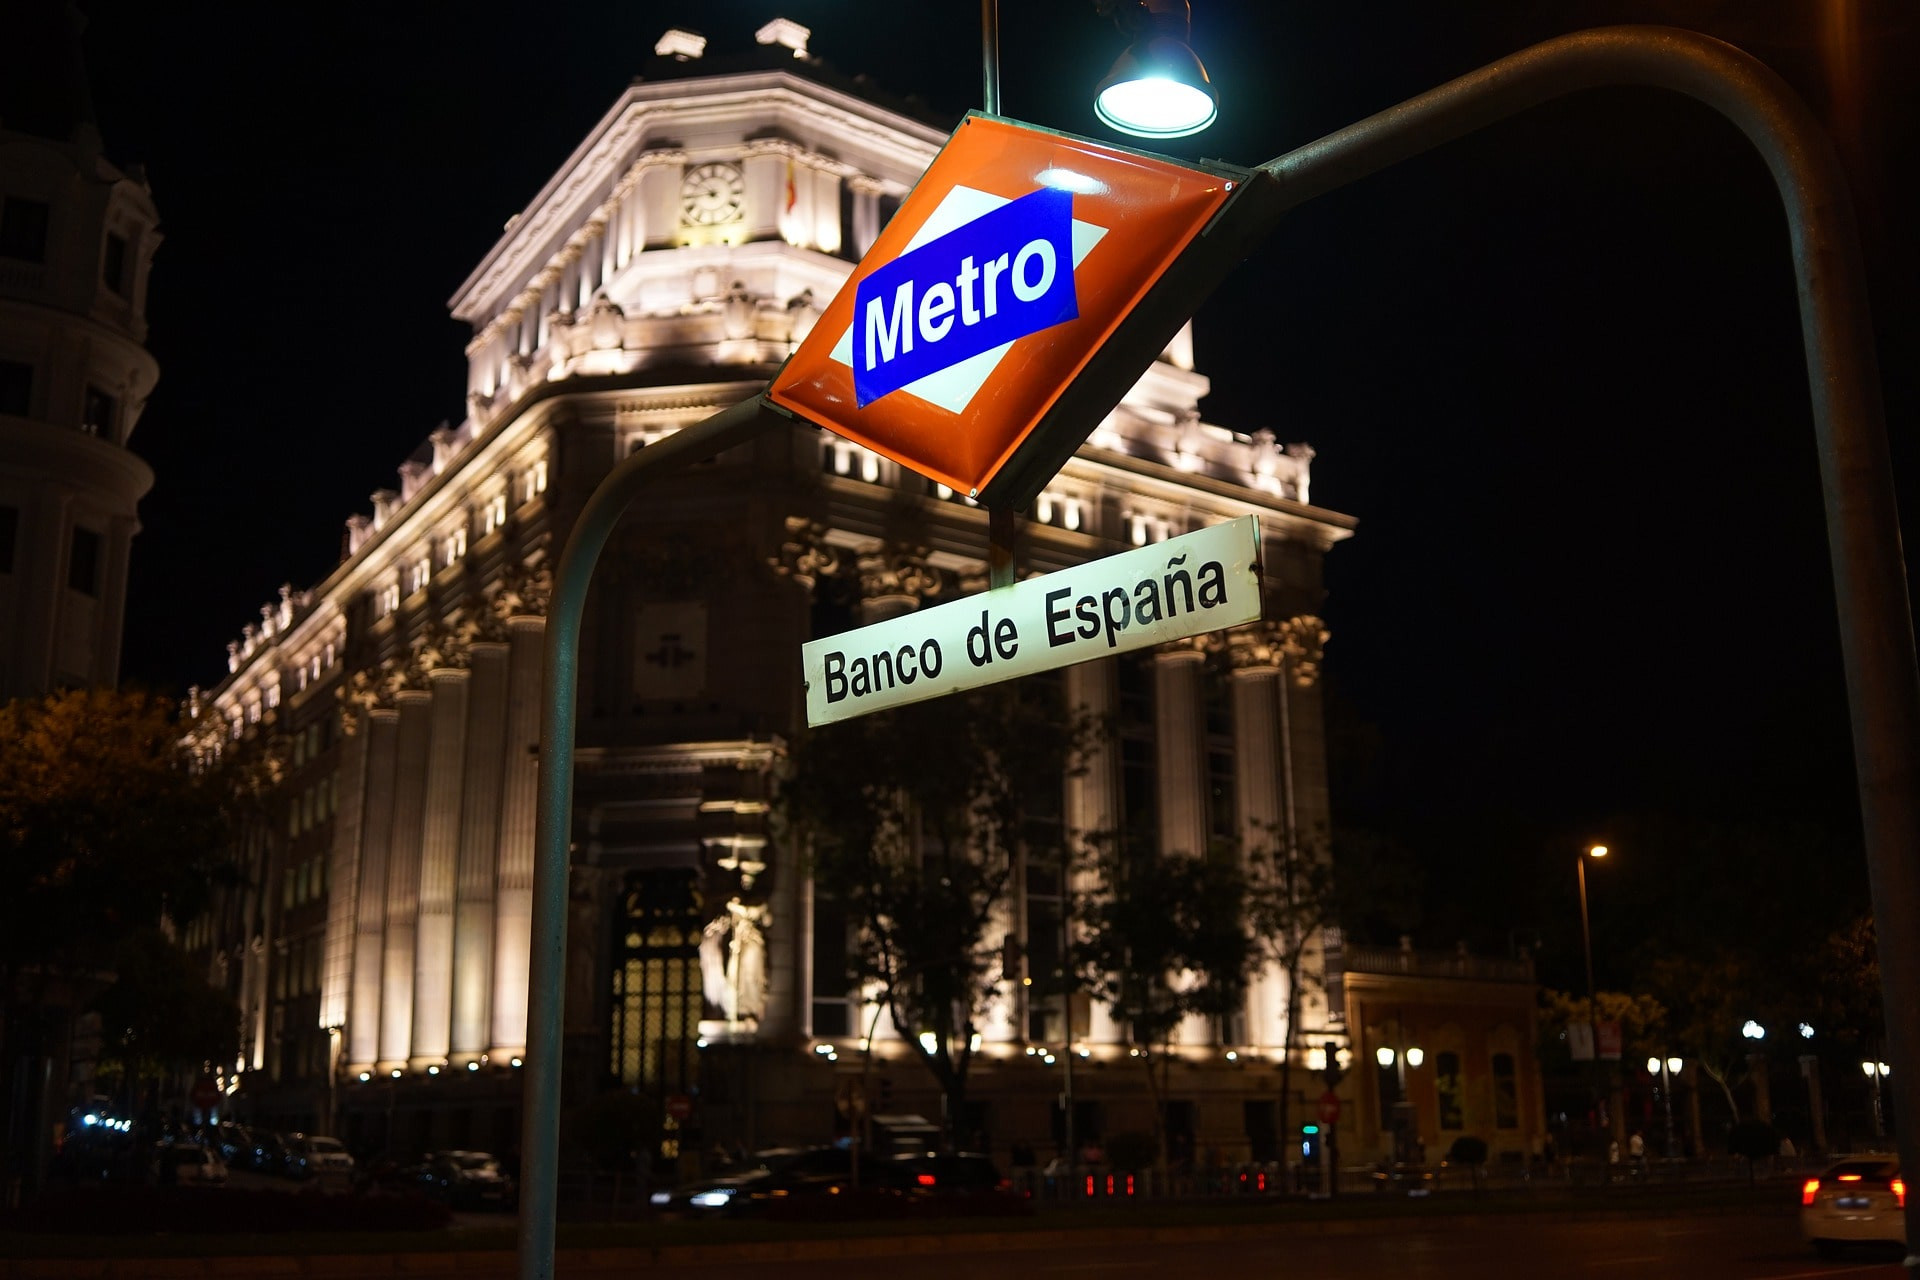 The entrance of a subway station in Madrid